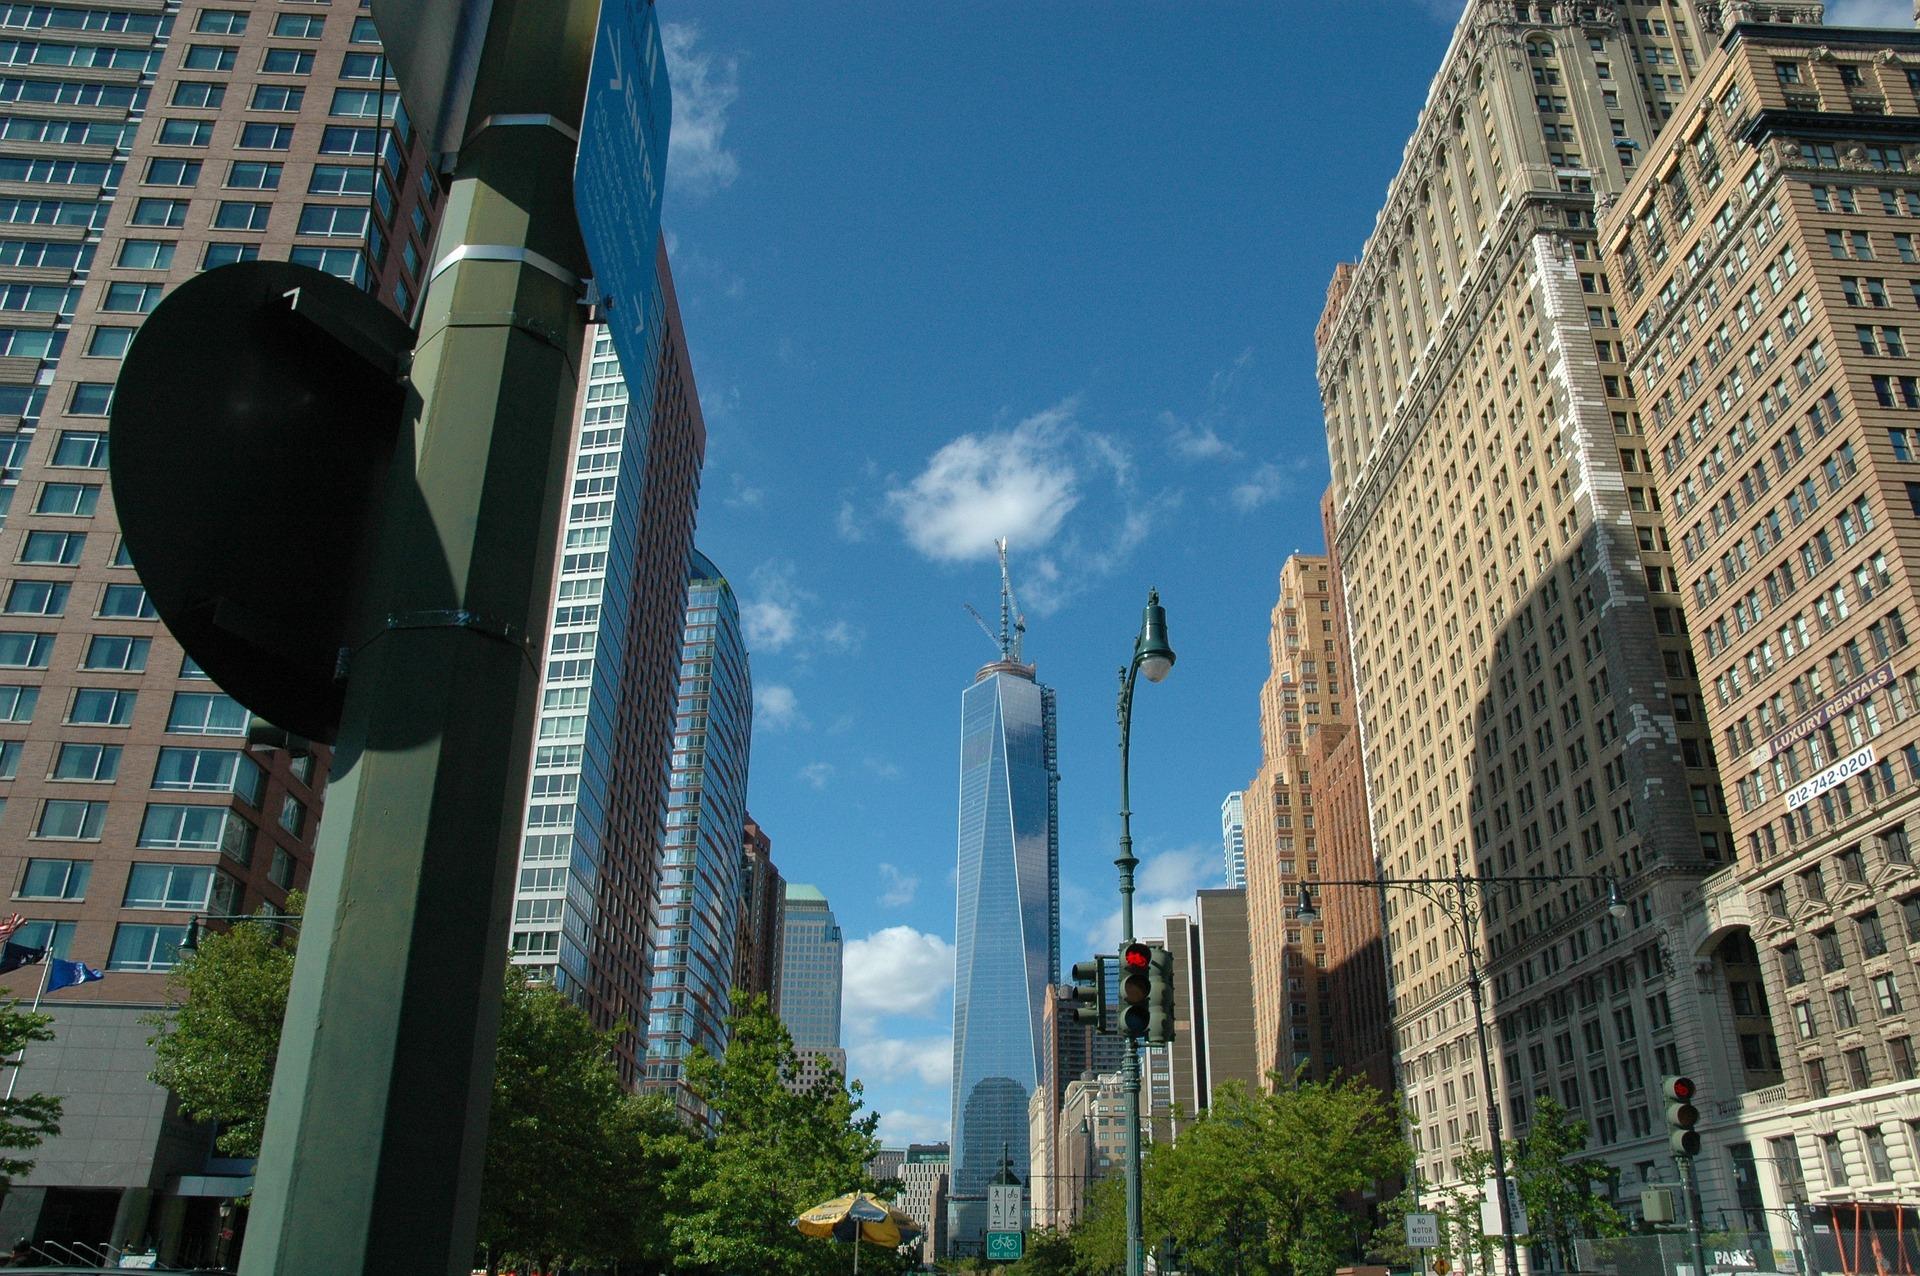 freedom-tower-263927_1920